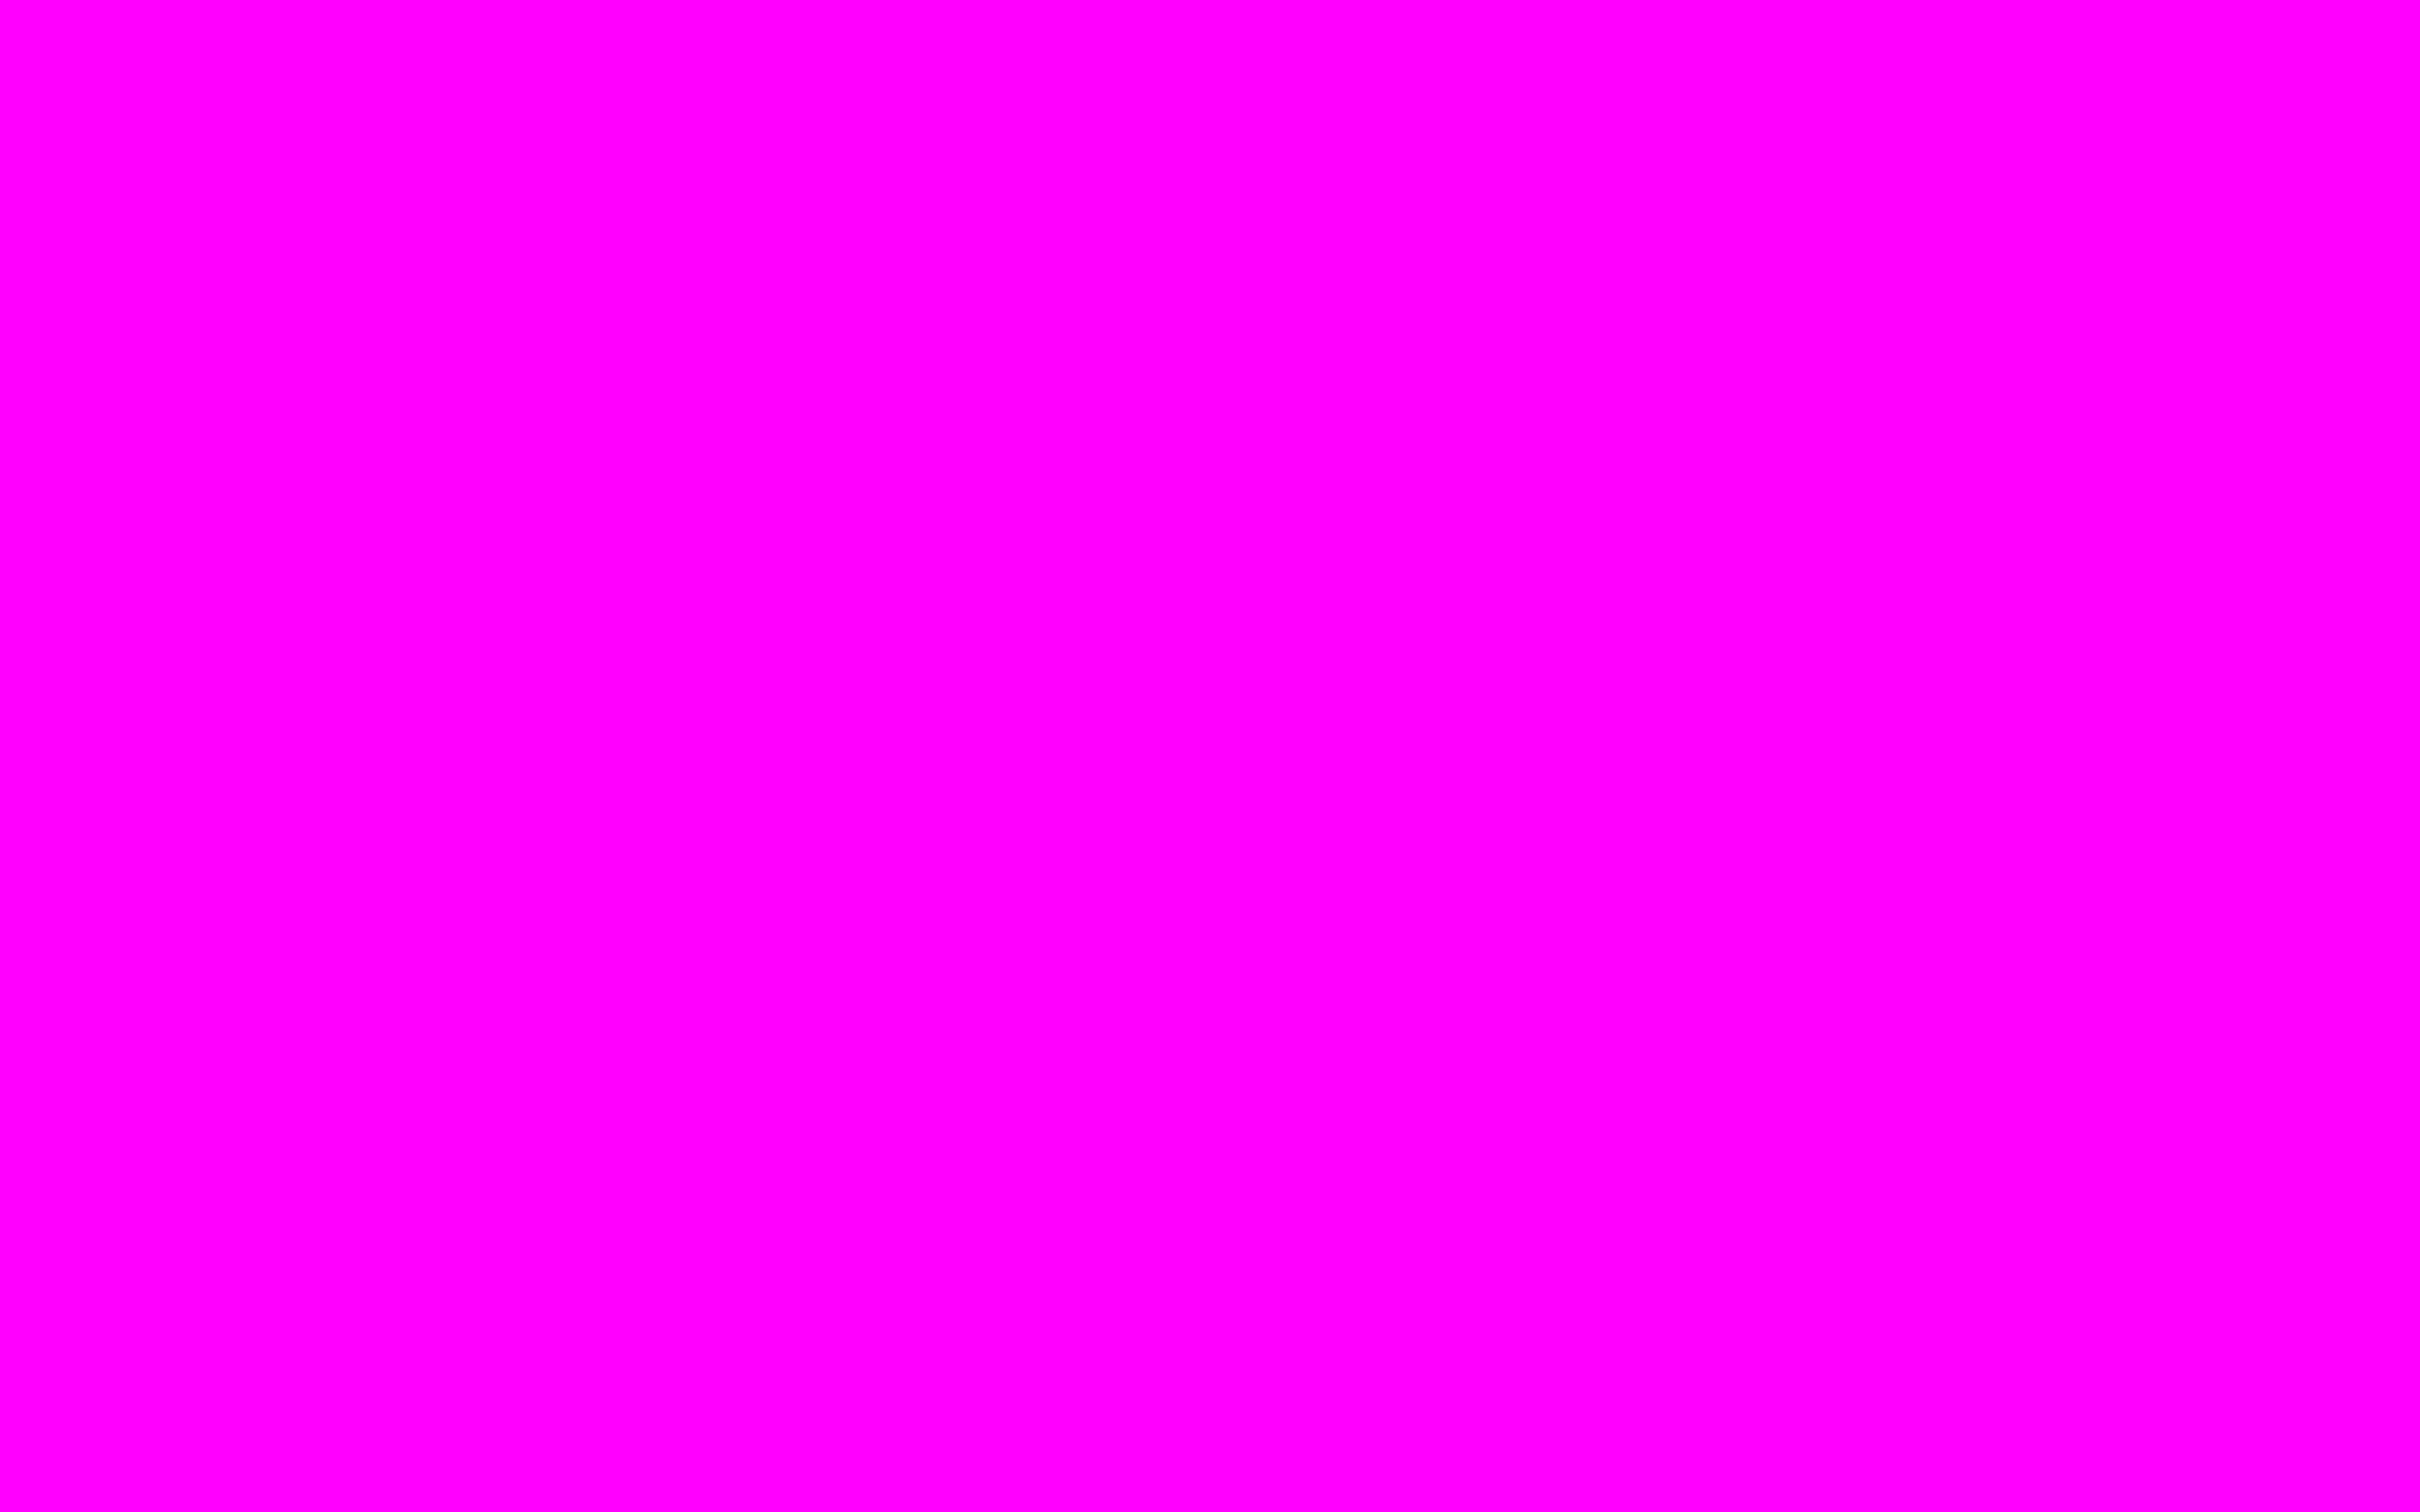 2880x1800 Fuchsia Solid Color Background